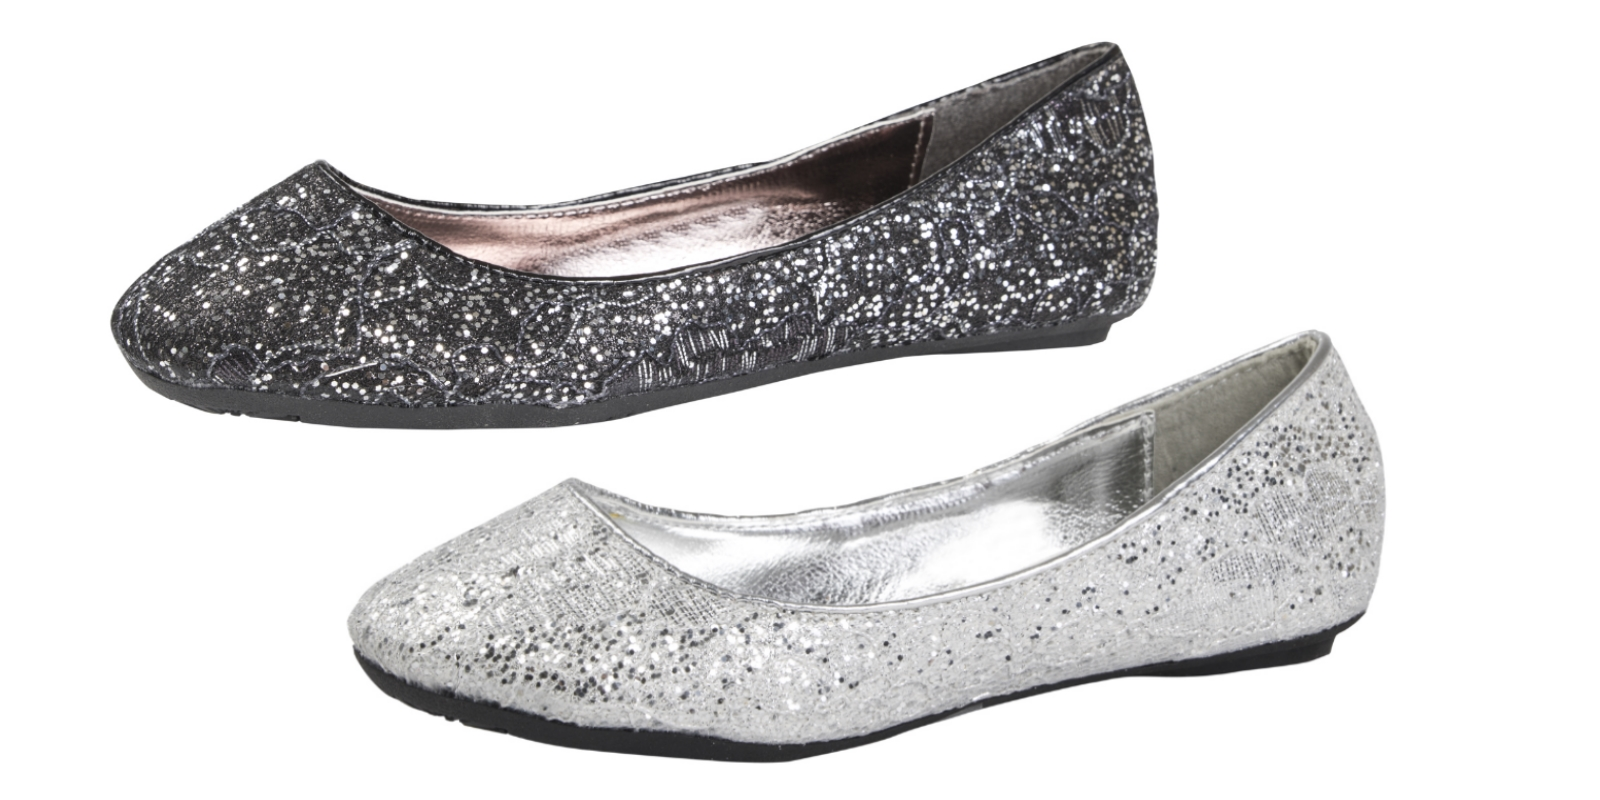 Shop Women's Flat Shoes at Payless to find the lowest prices on shoes. Free Shipping +$25, Free Returns at any Payless Store. Payless ShoeSource. Shop Payless for a large selection of women's flat shoes across ballet flats, dress flats, moccasins, and oxfords. Sort By: Go. Showing 70 Results Sale! Women's Gigi Point Flat.